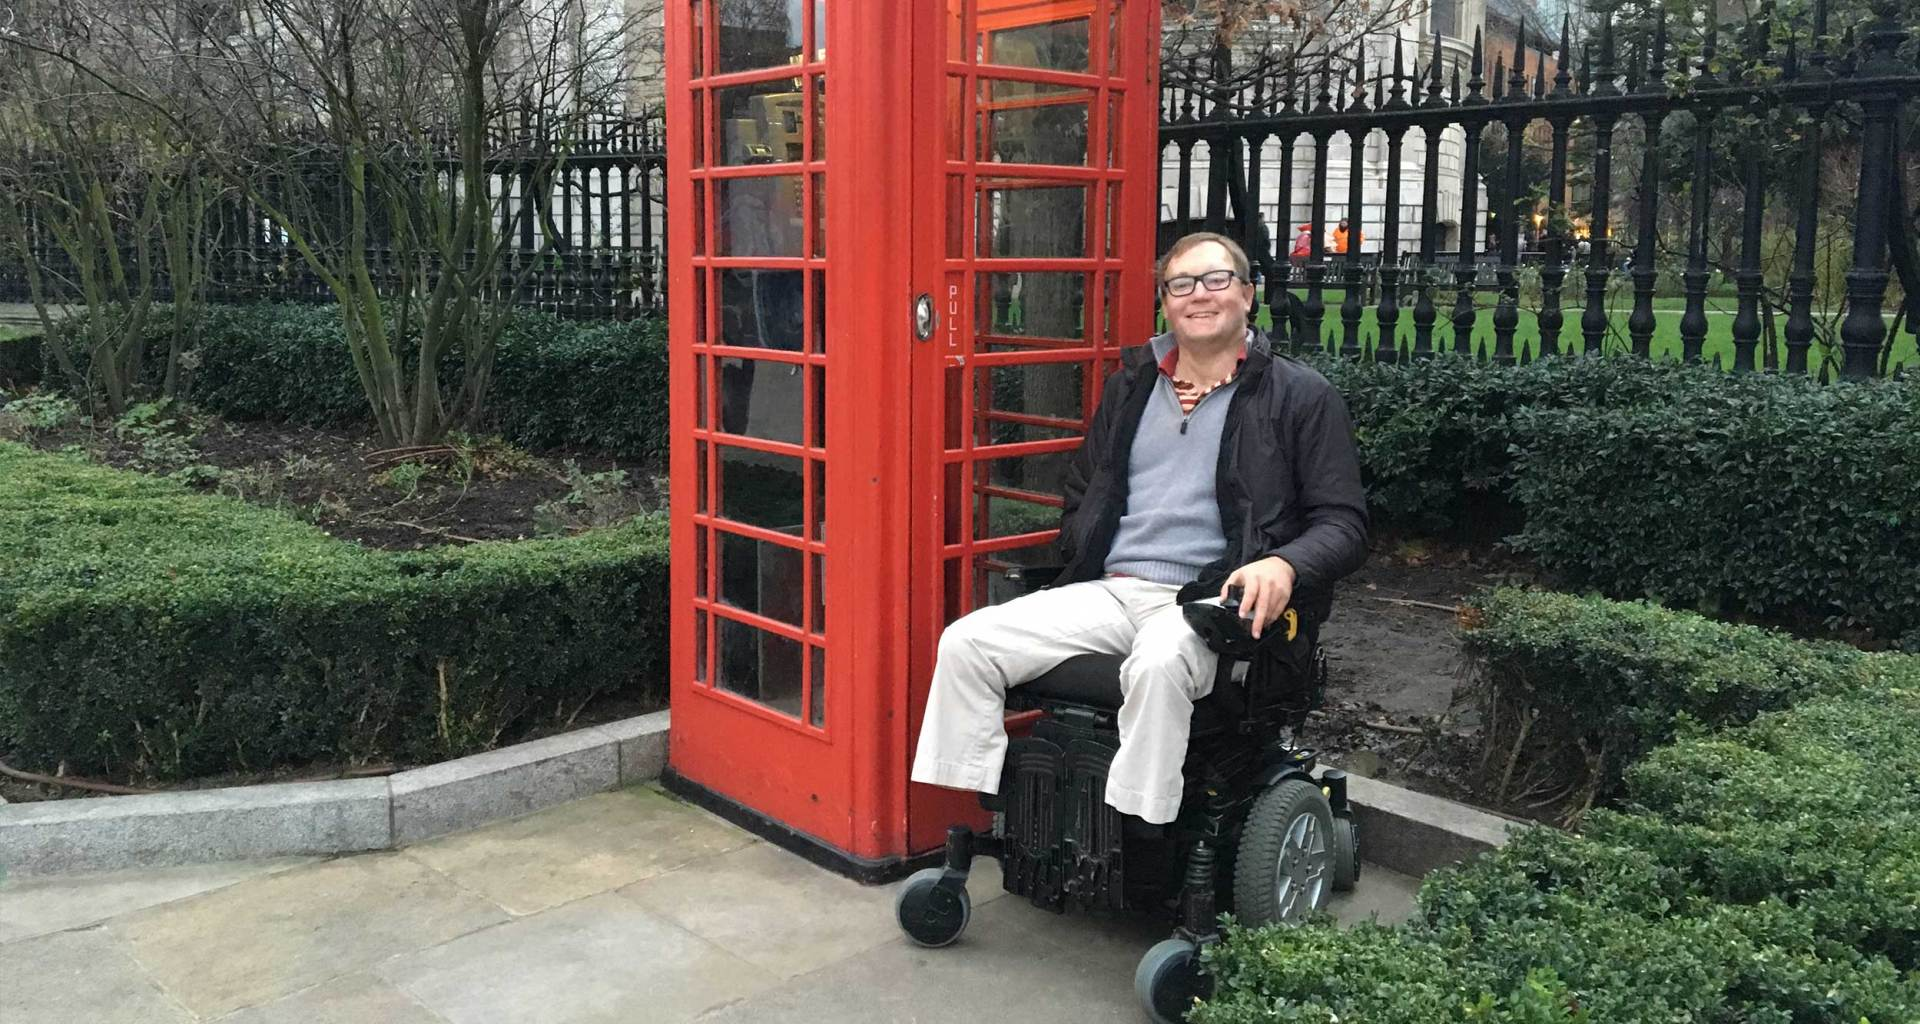 Wheelchair user next to red telephone booth in London.